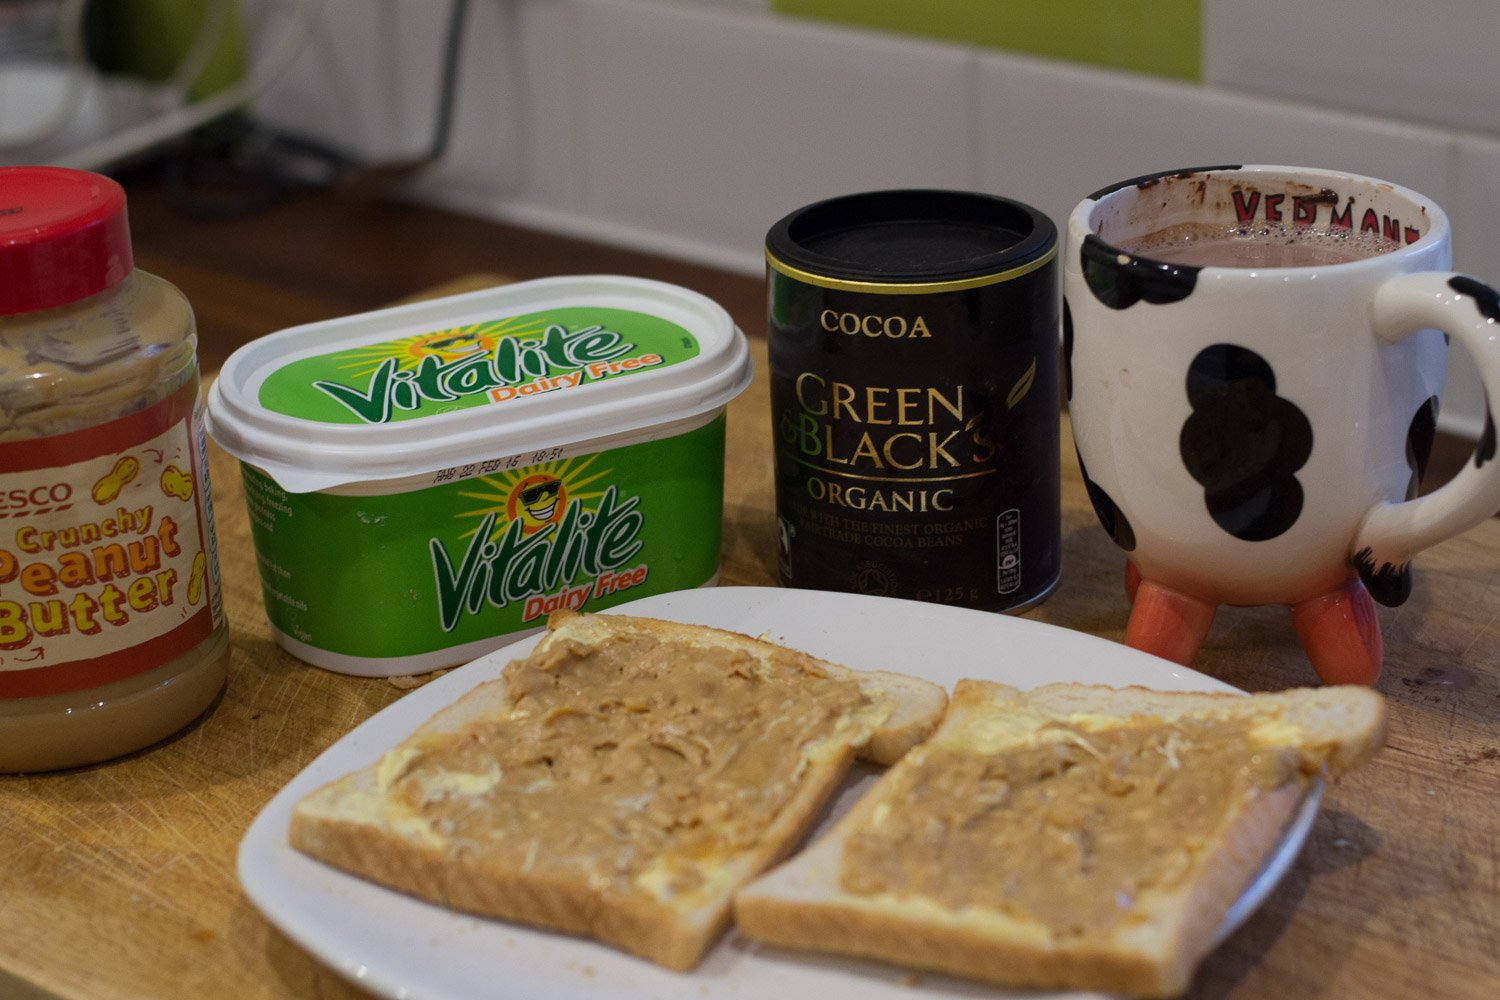 Vegan peanut butter on toast and hot chocolate